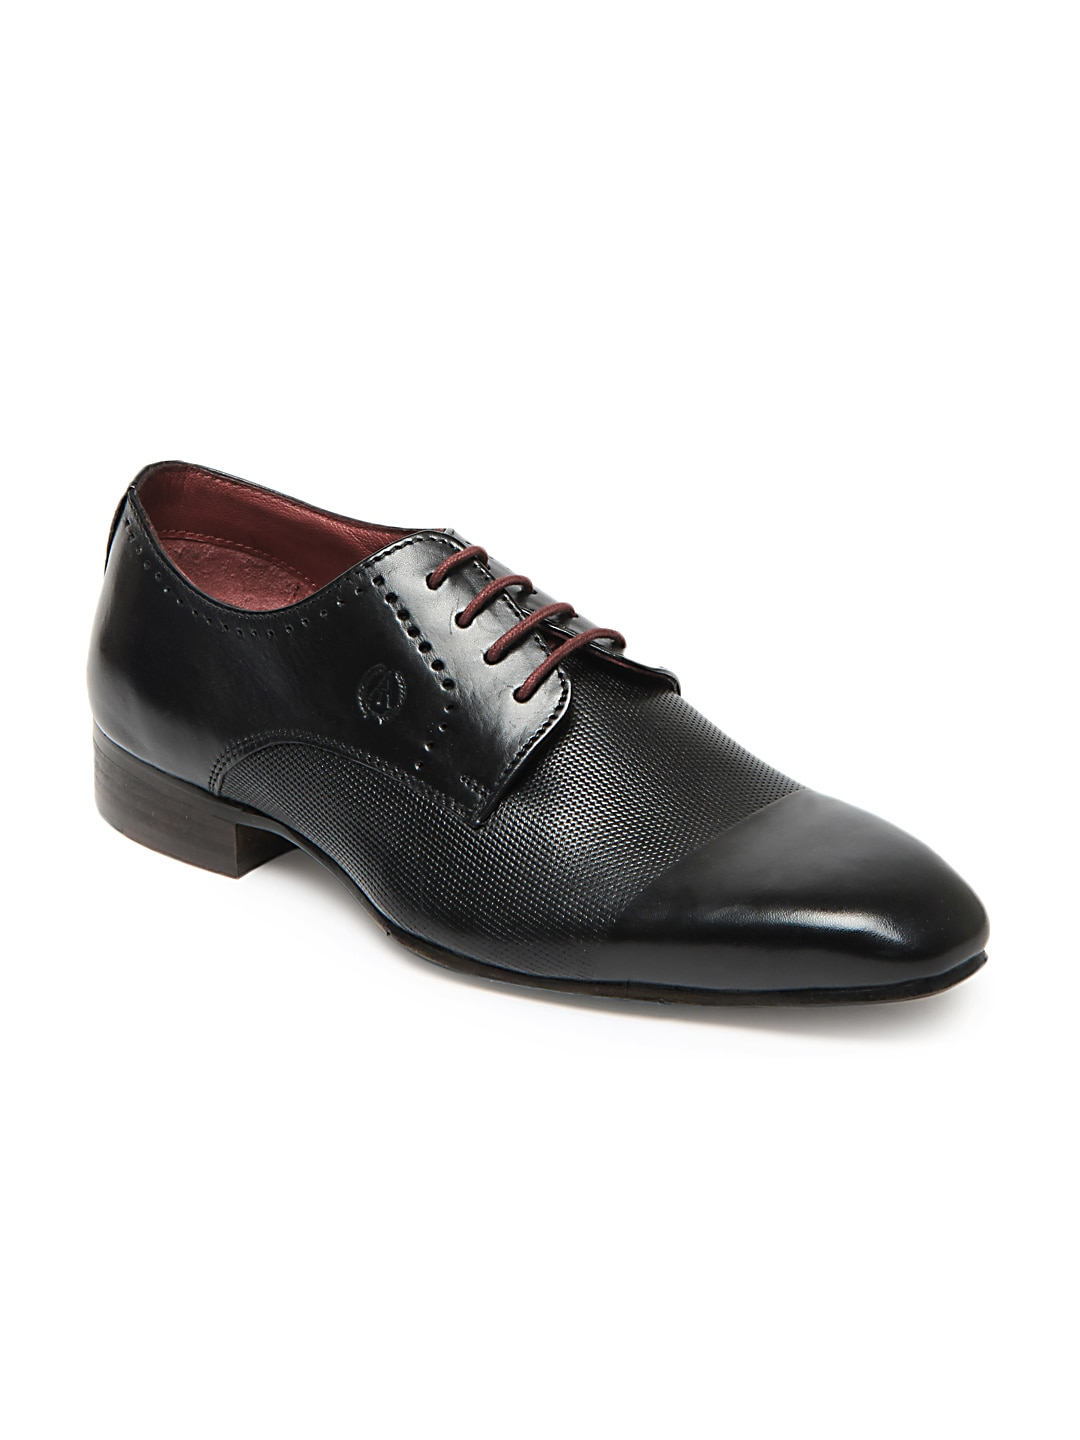 buy alberto torresi black leather semi formal shoes